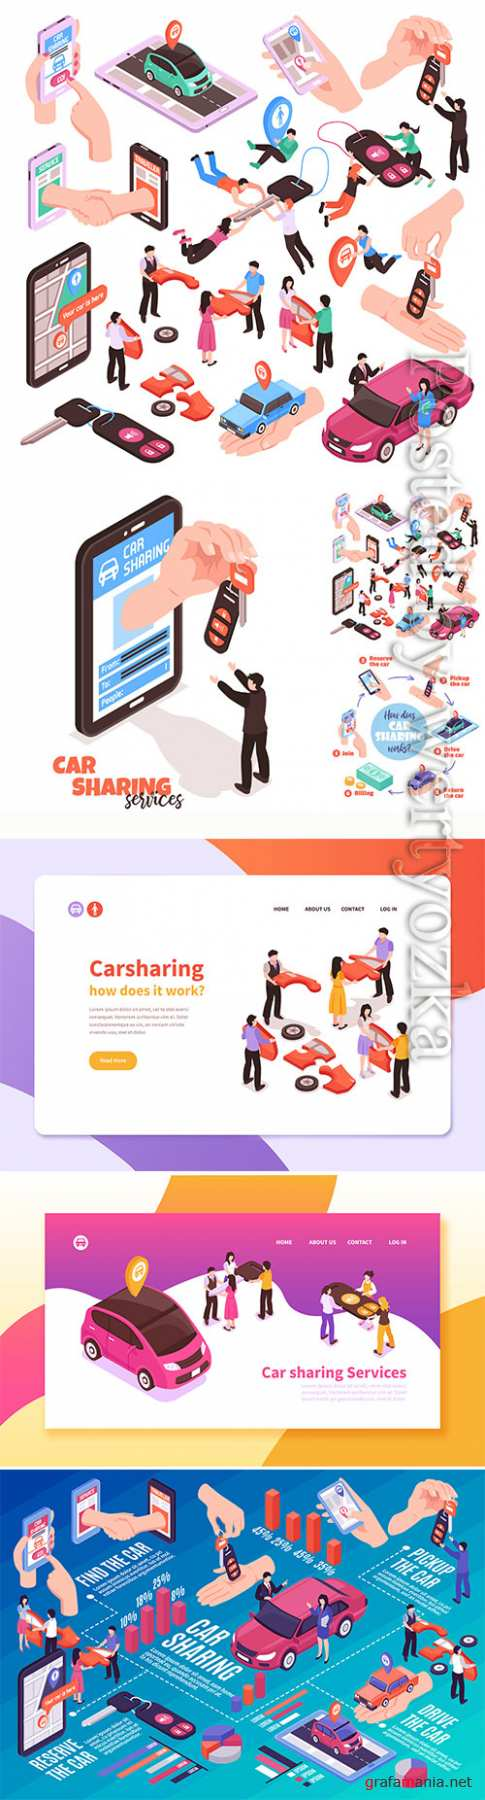 Isometric set of car sharing service elements vector illustration